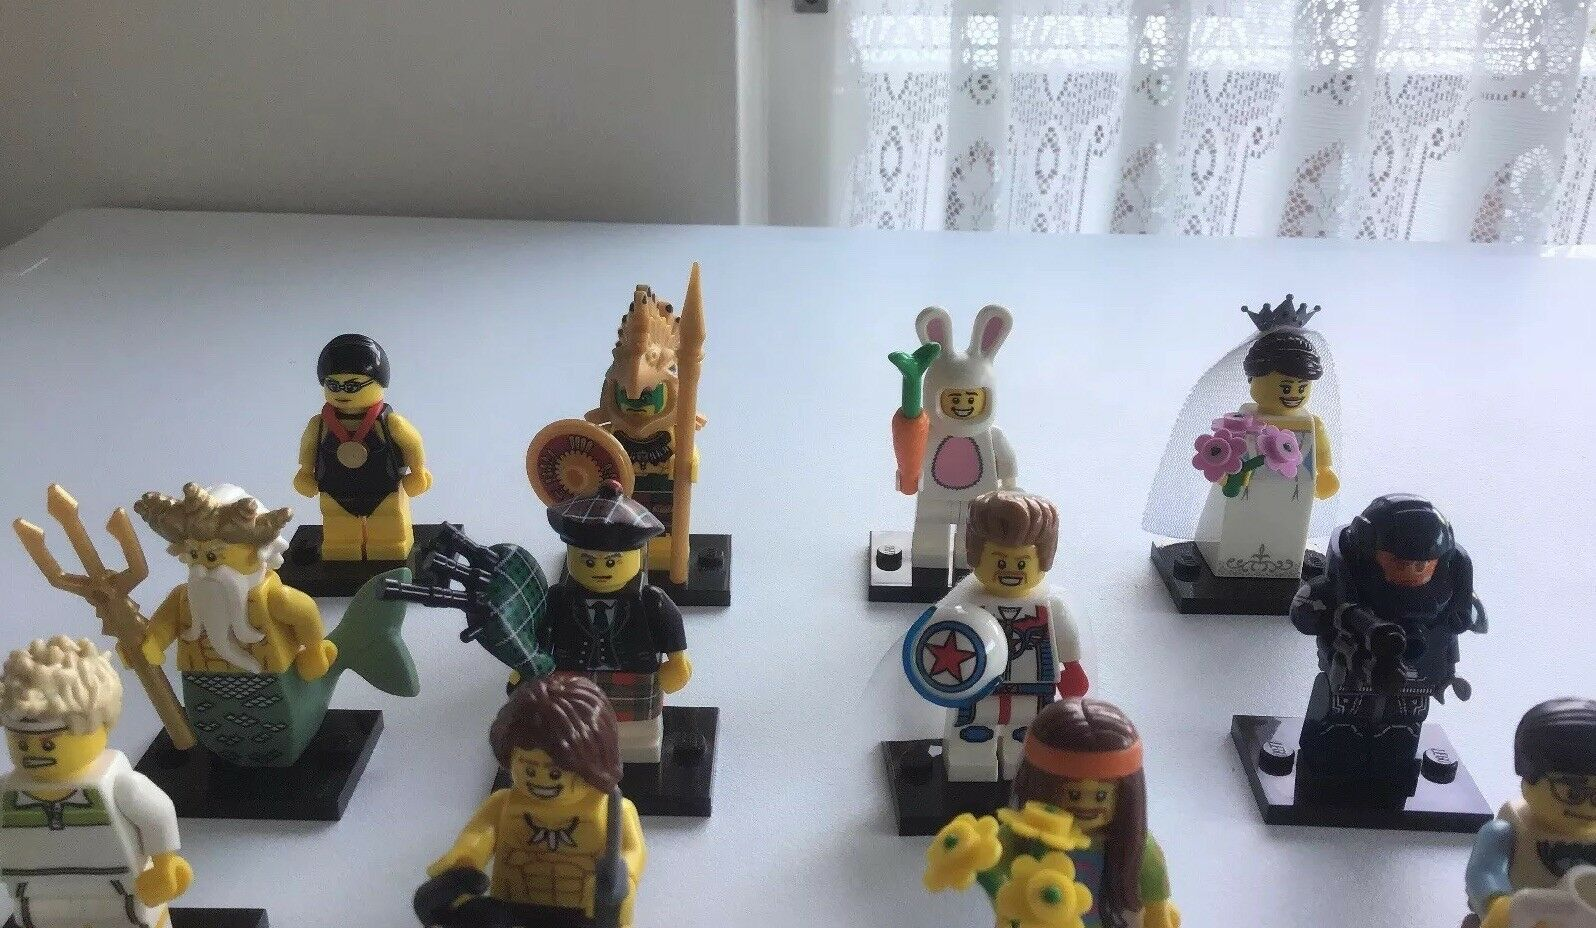 Lego Minifigures Minifigures Minifigures Series 7 Set 8831 Complete 16 Minifigs From 2012 743087